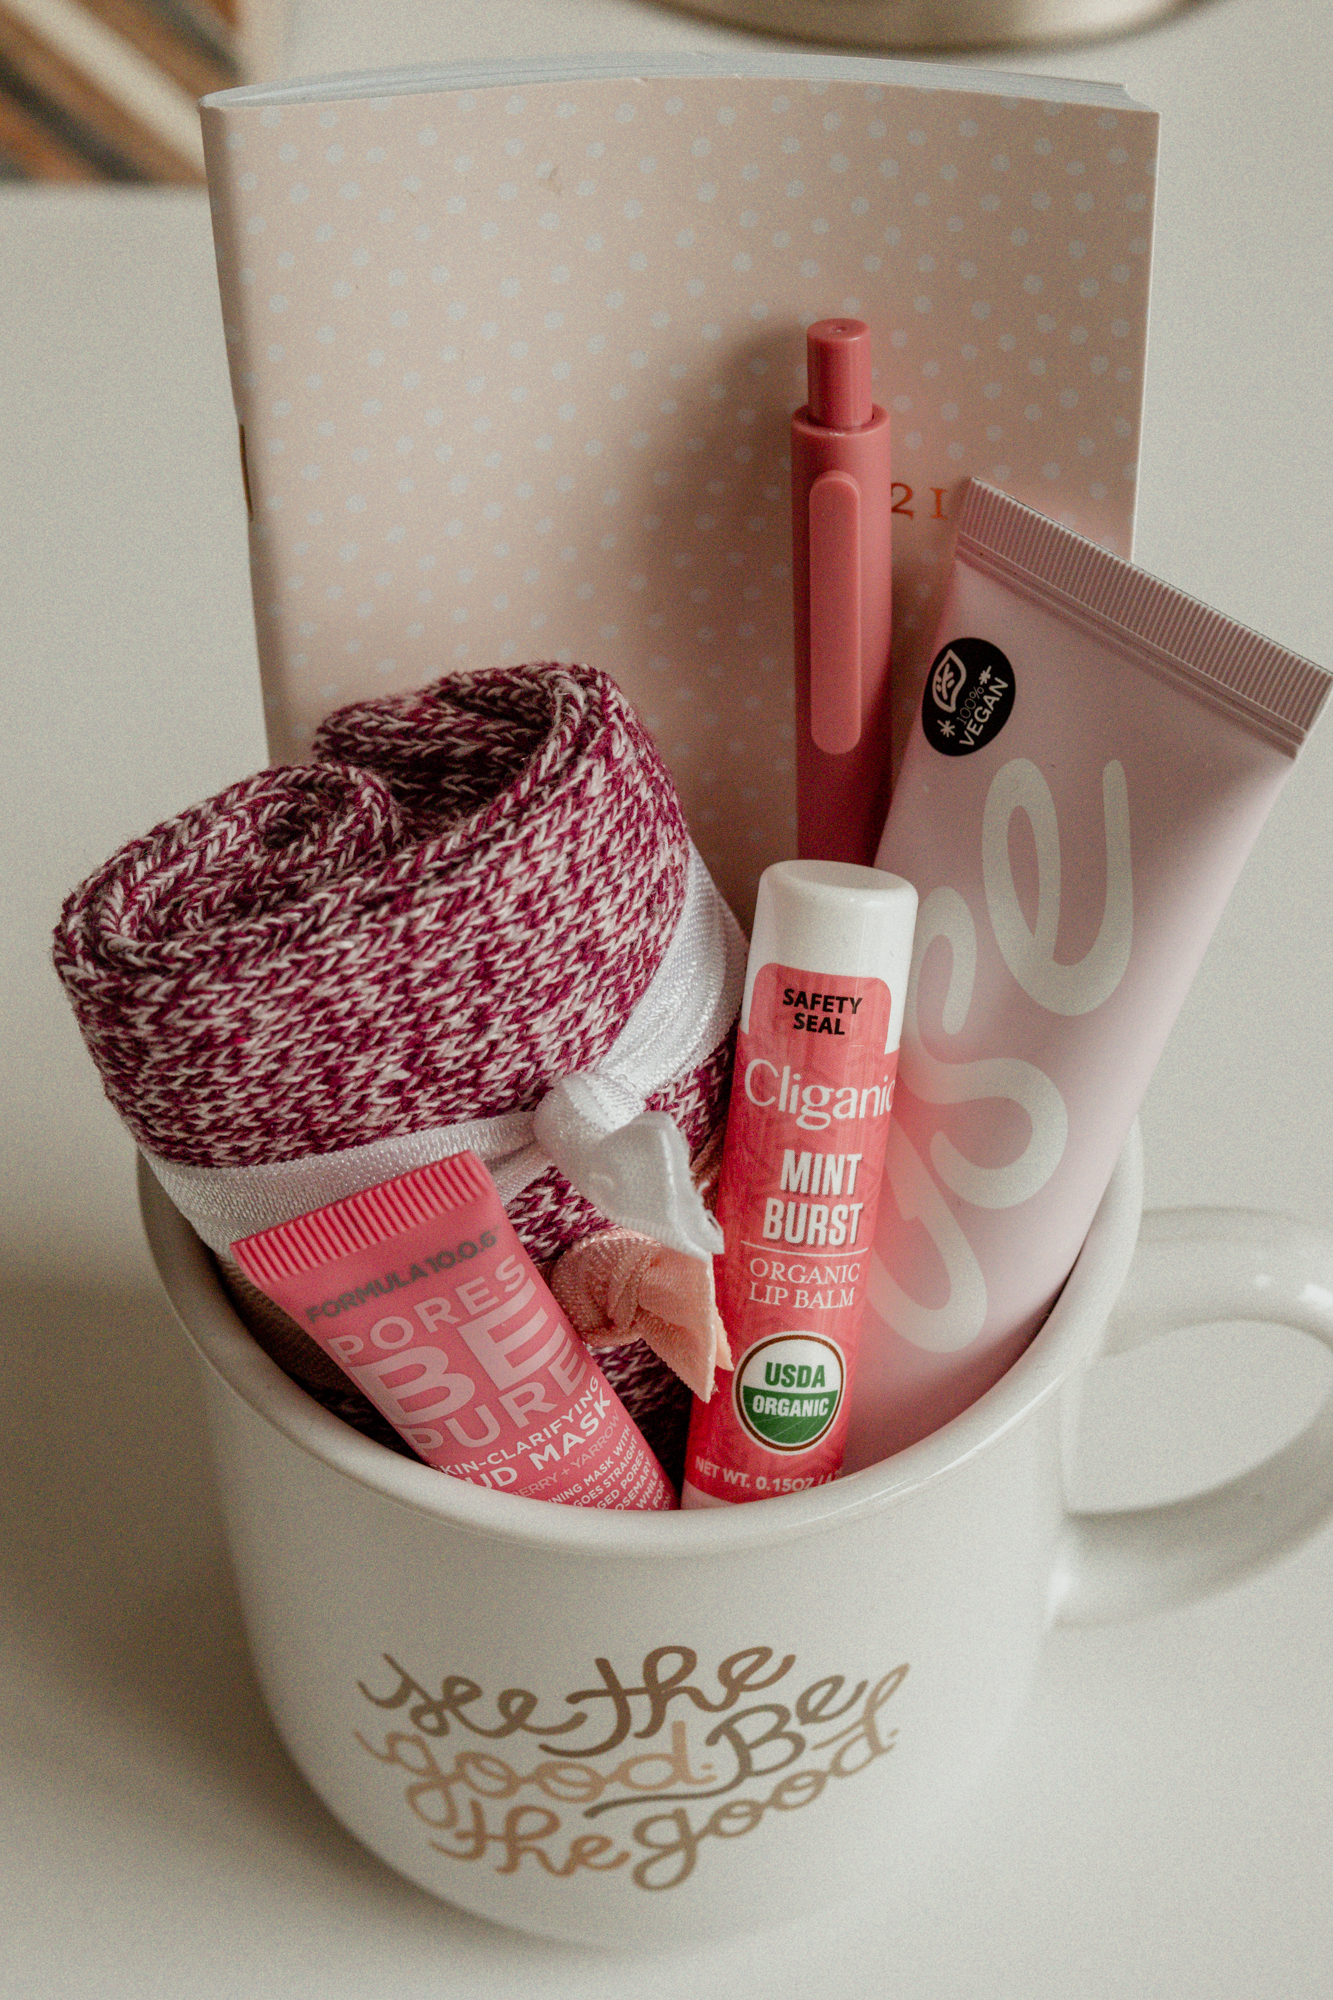 A filled mug gift idea for women including face masks, hair ties, hand cream, socks, and more.